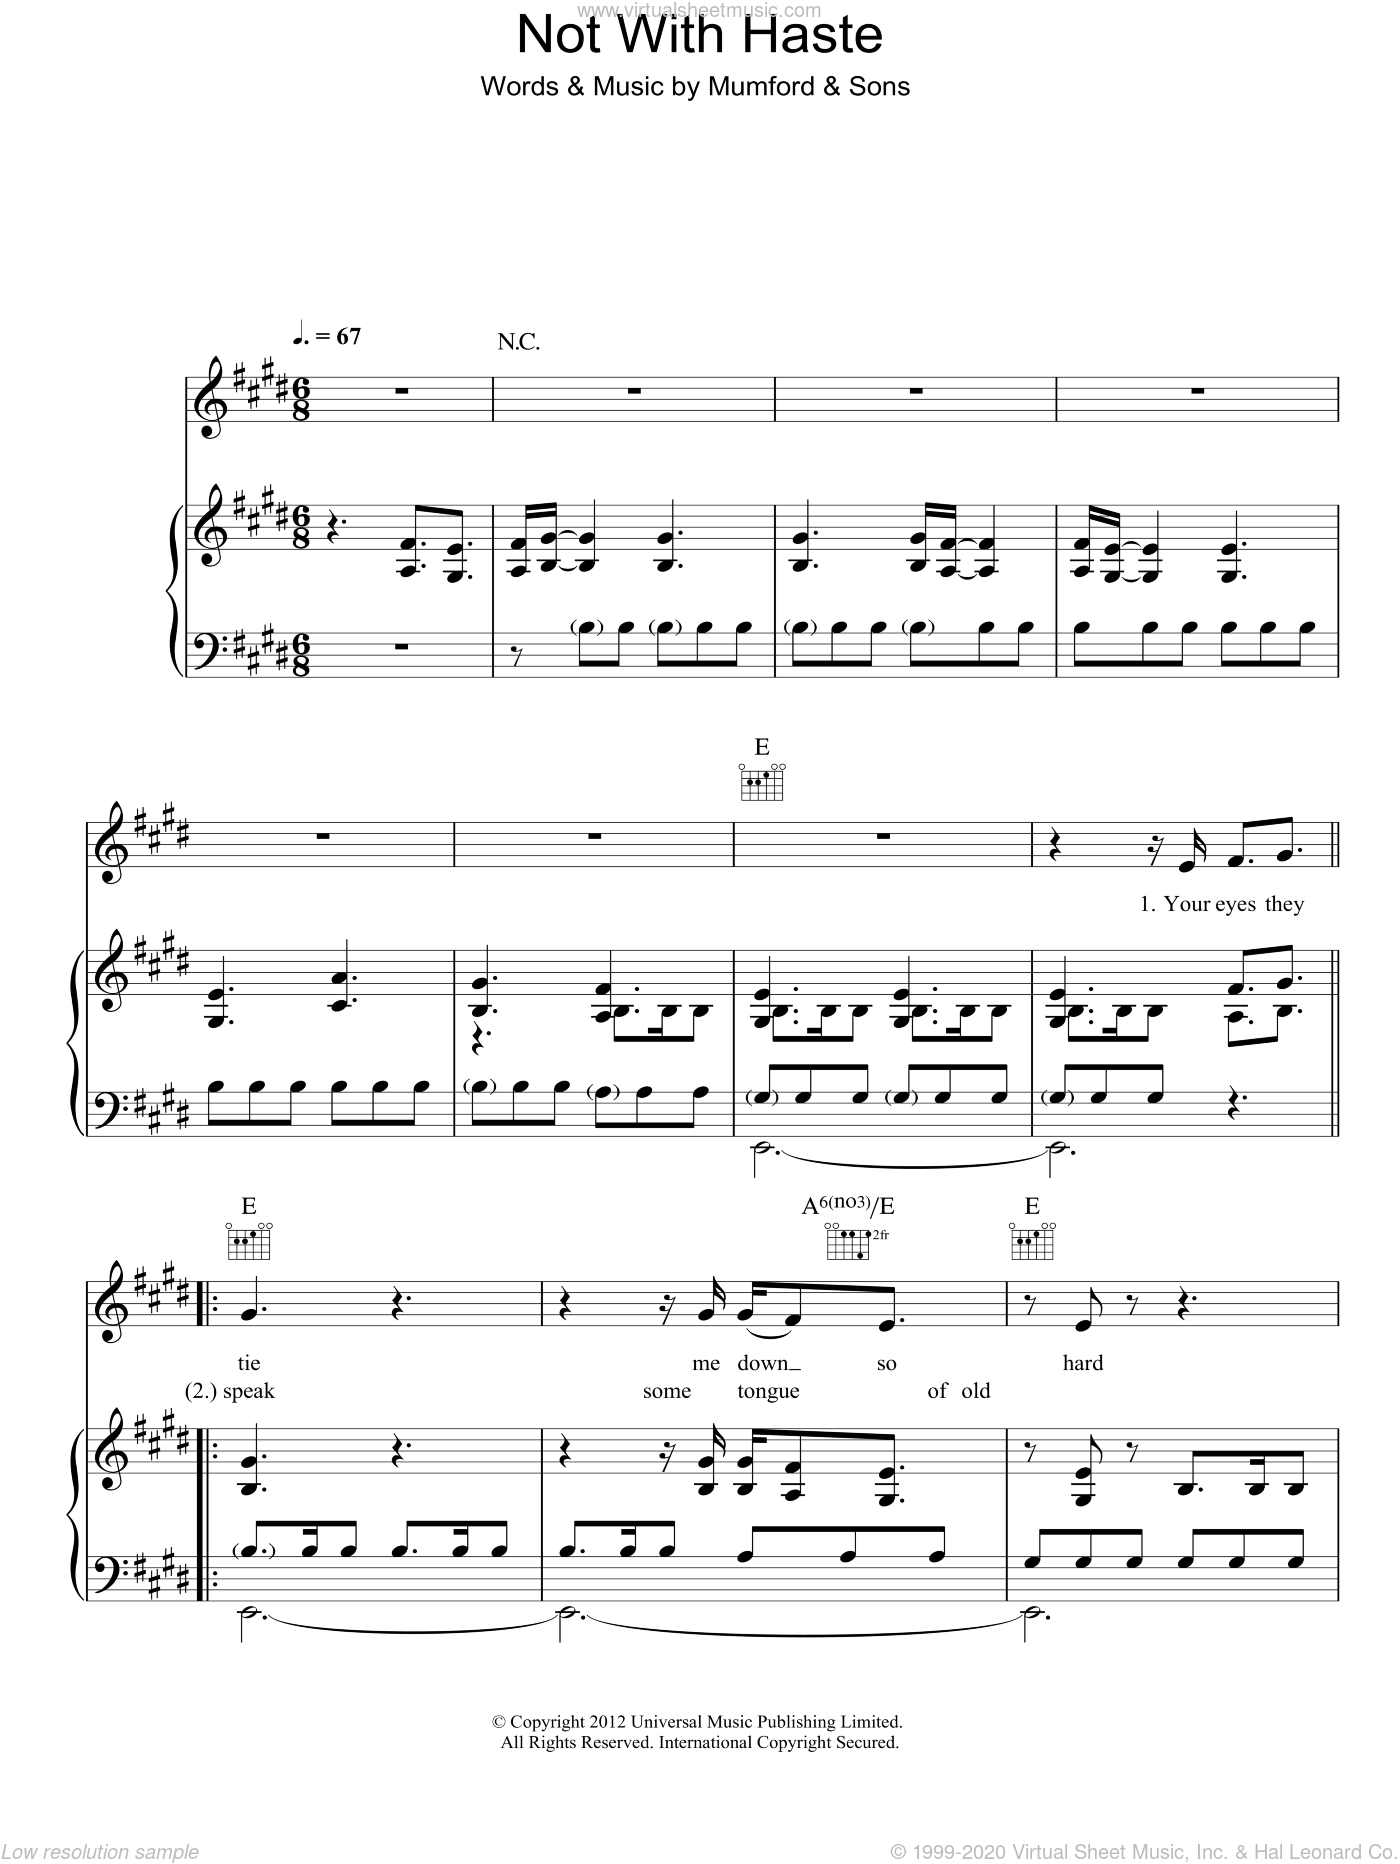 Not With Haste sheet music for voice, piano or guitar by Mumford & Sons. Score Image Preview.